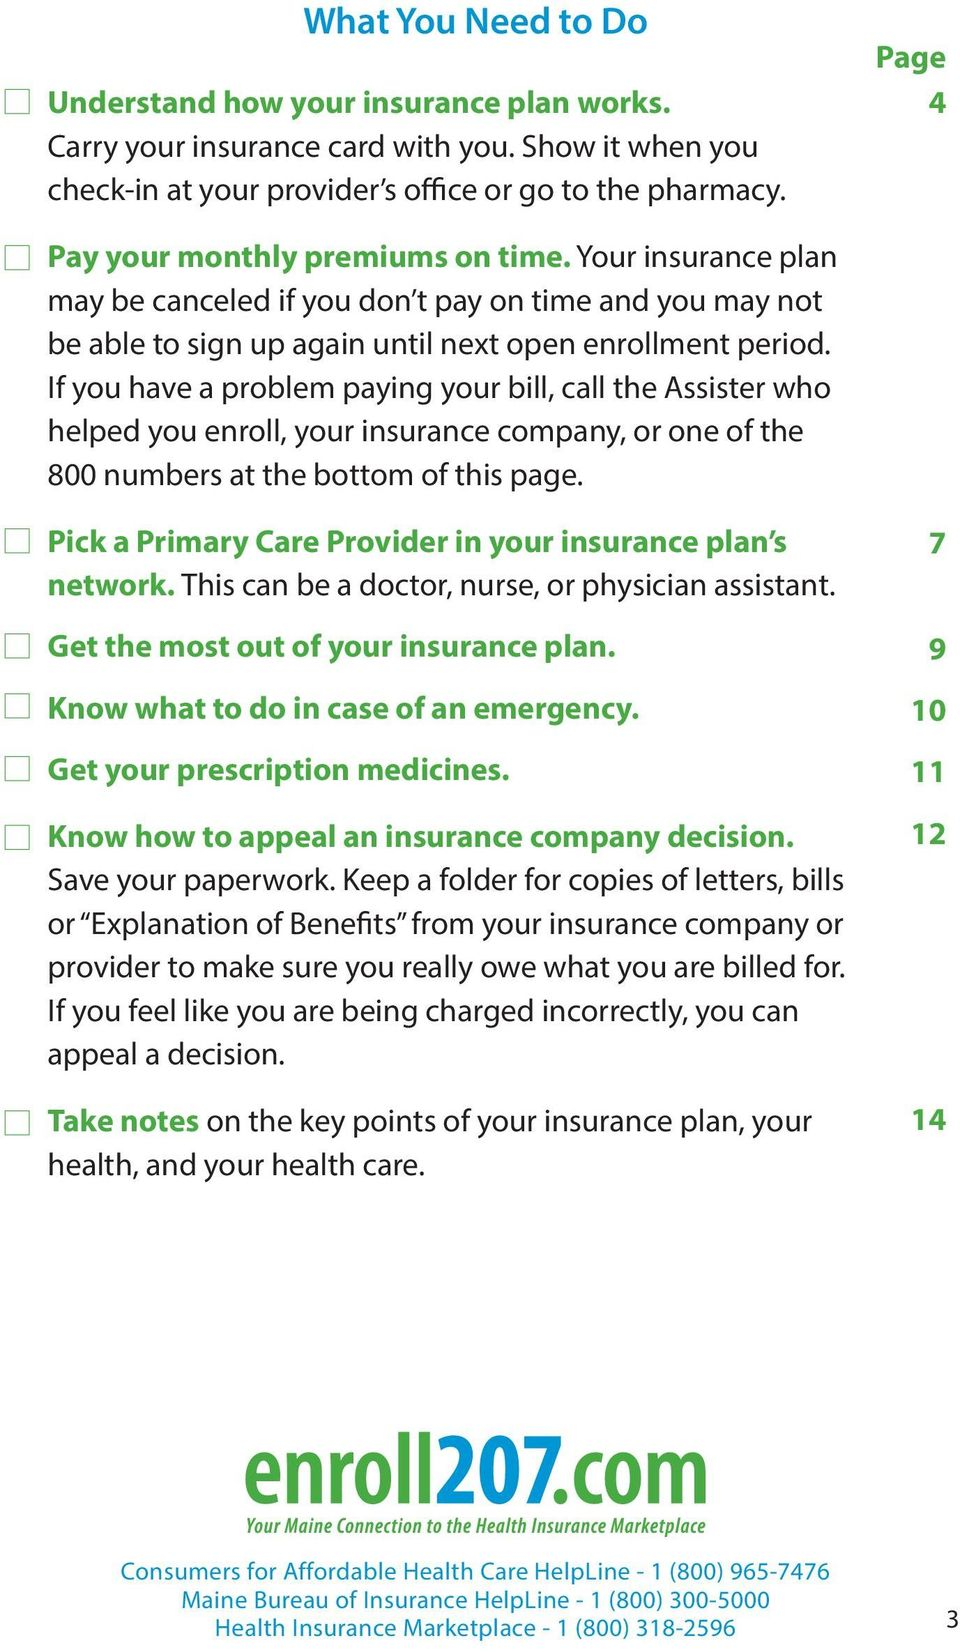 If you have a problem paying your bill, call the Assister who helped you enroll, your insurance company, or one of the 800 numbers at the bottom of this page.